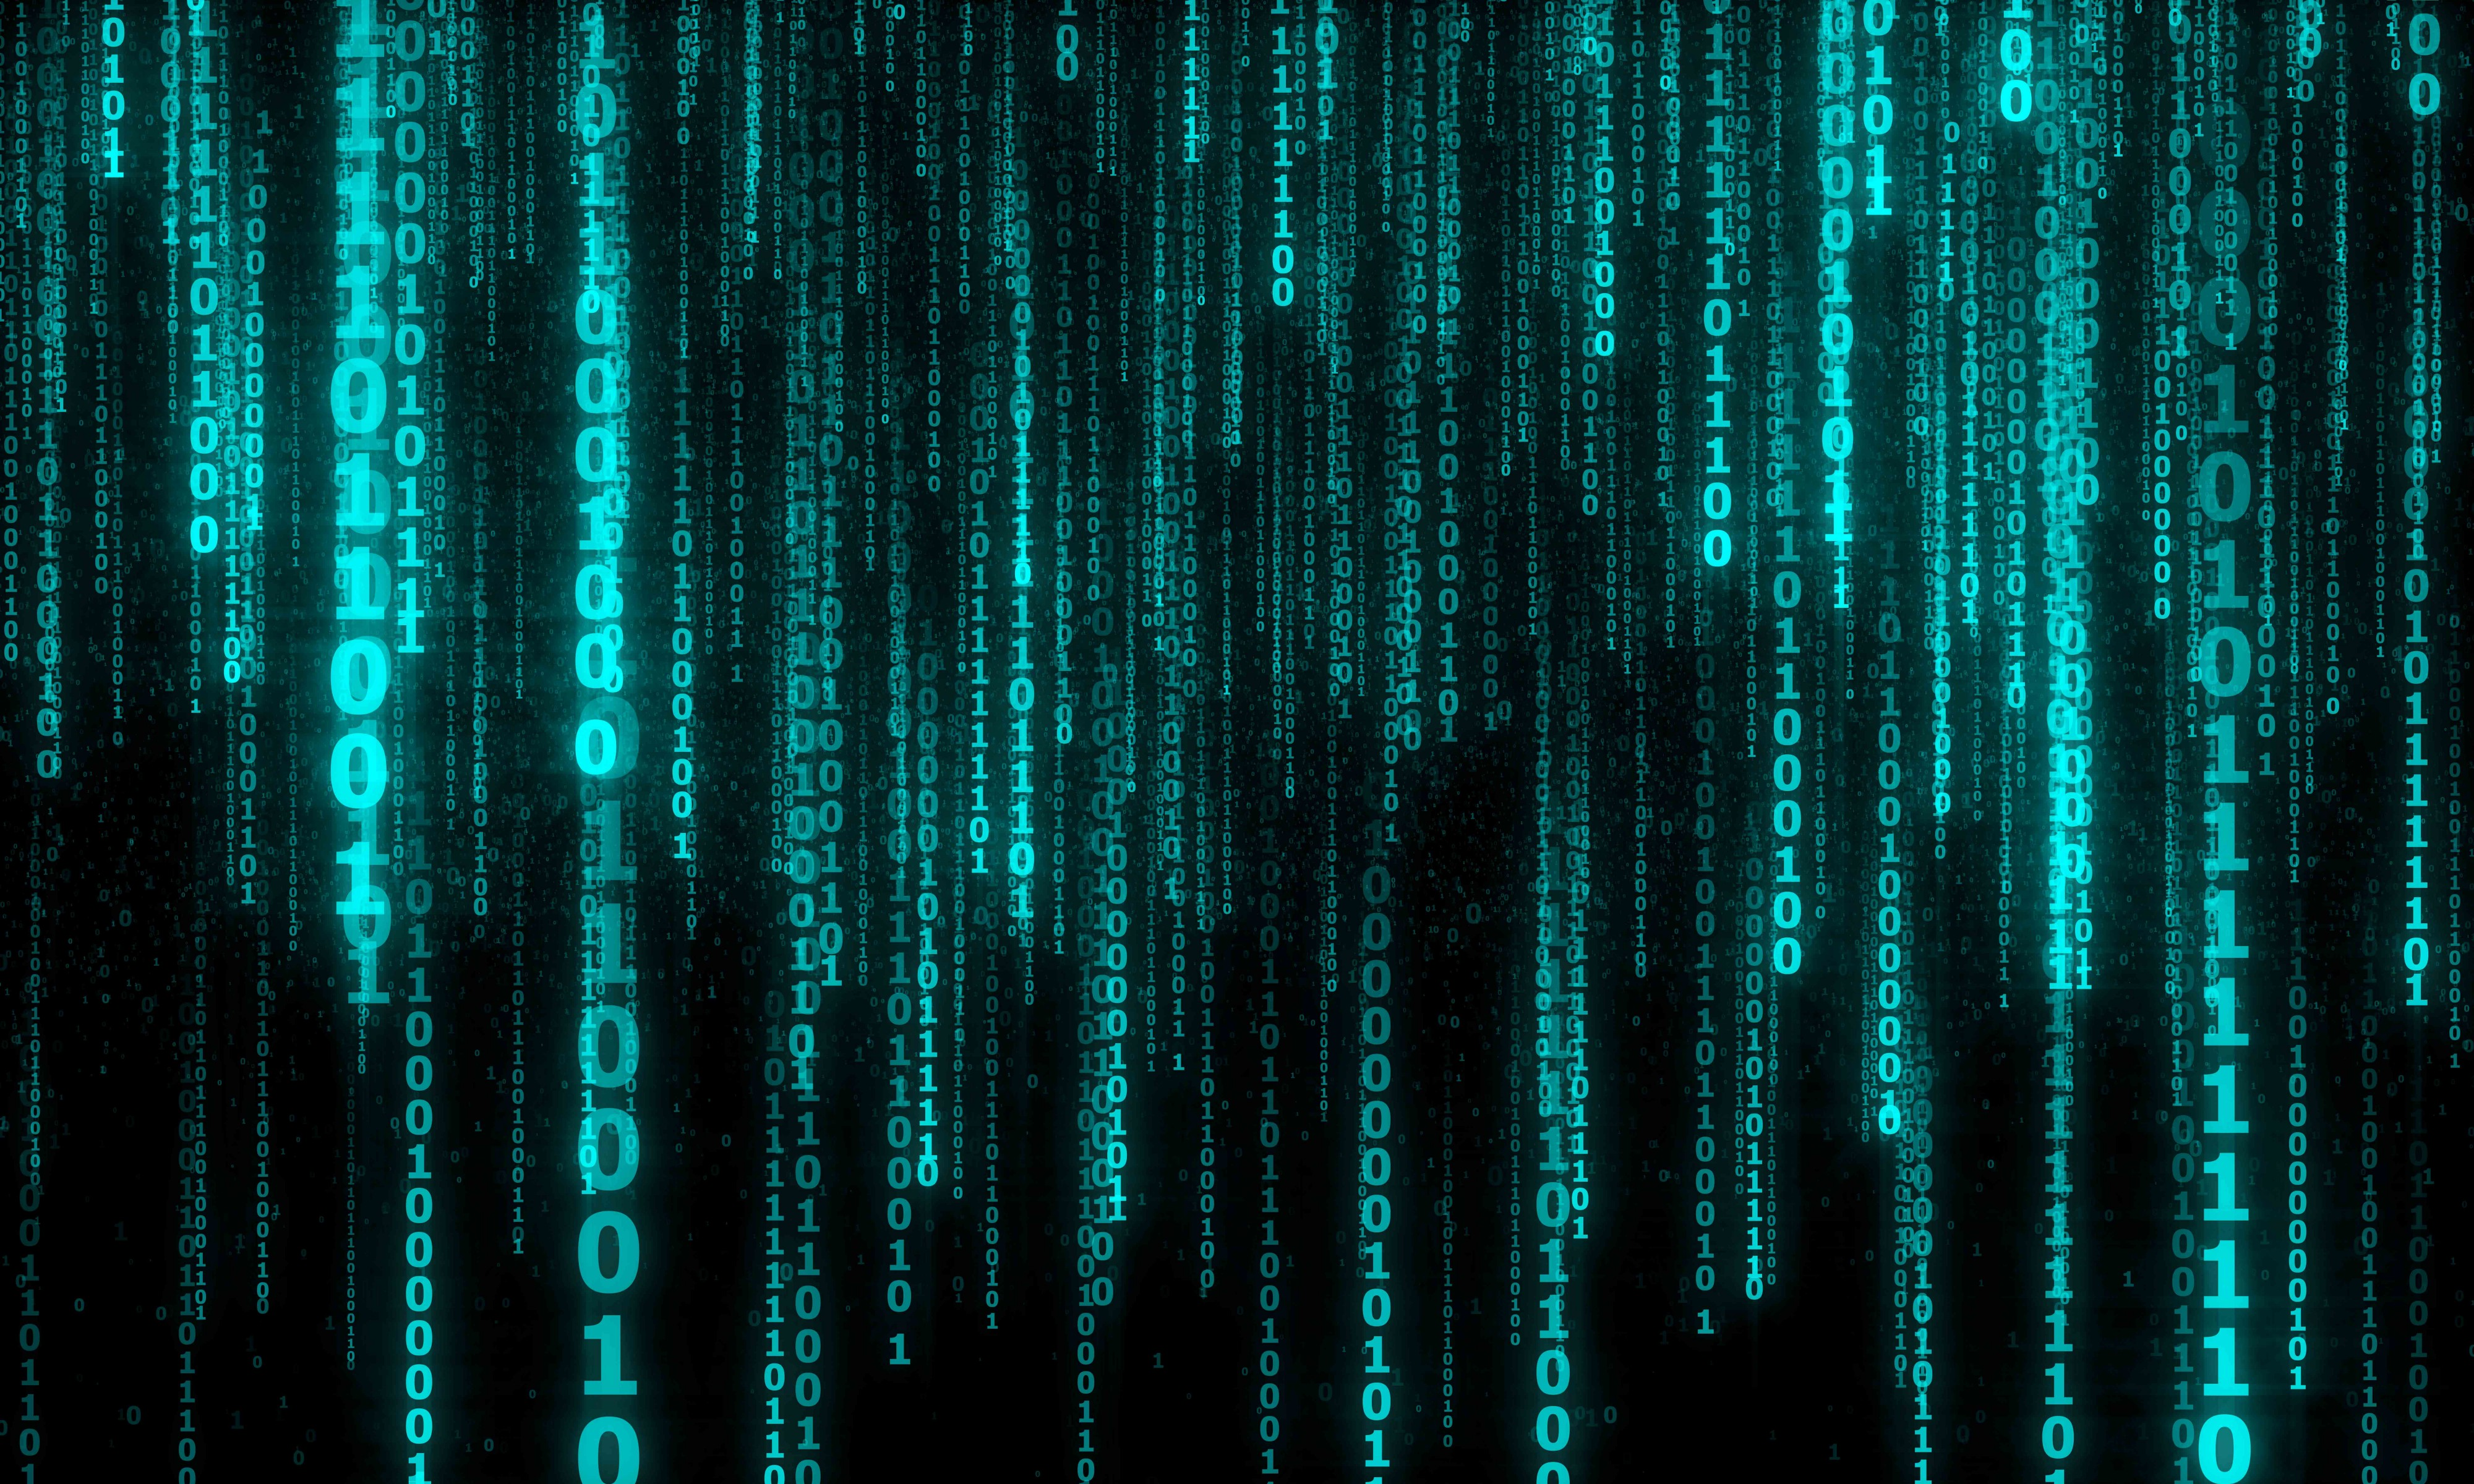 Using 'The Matrix' to feel climate change